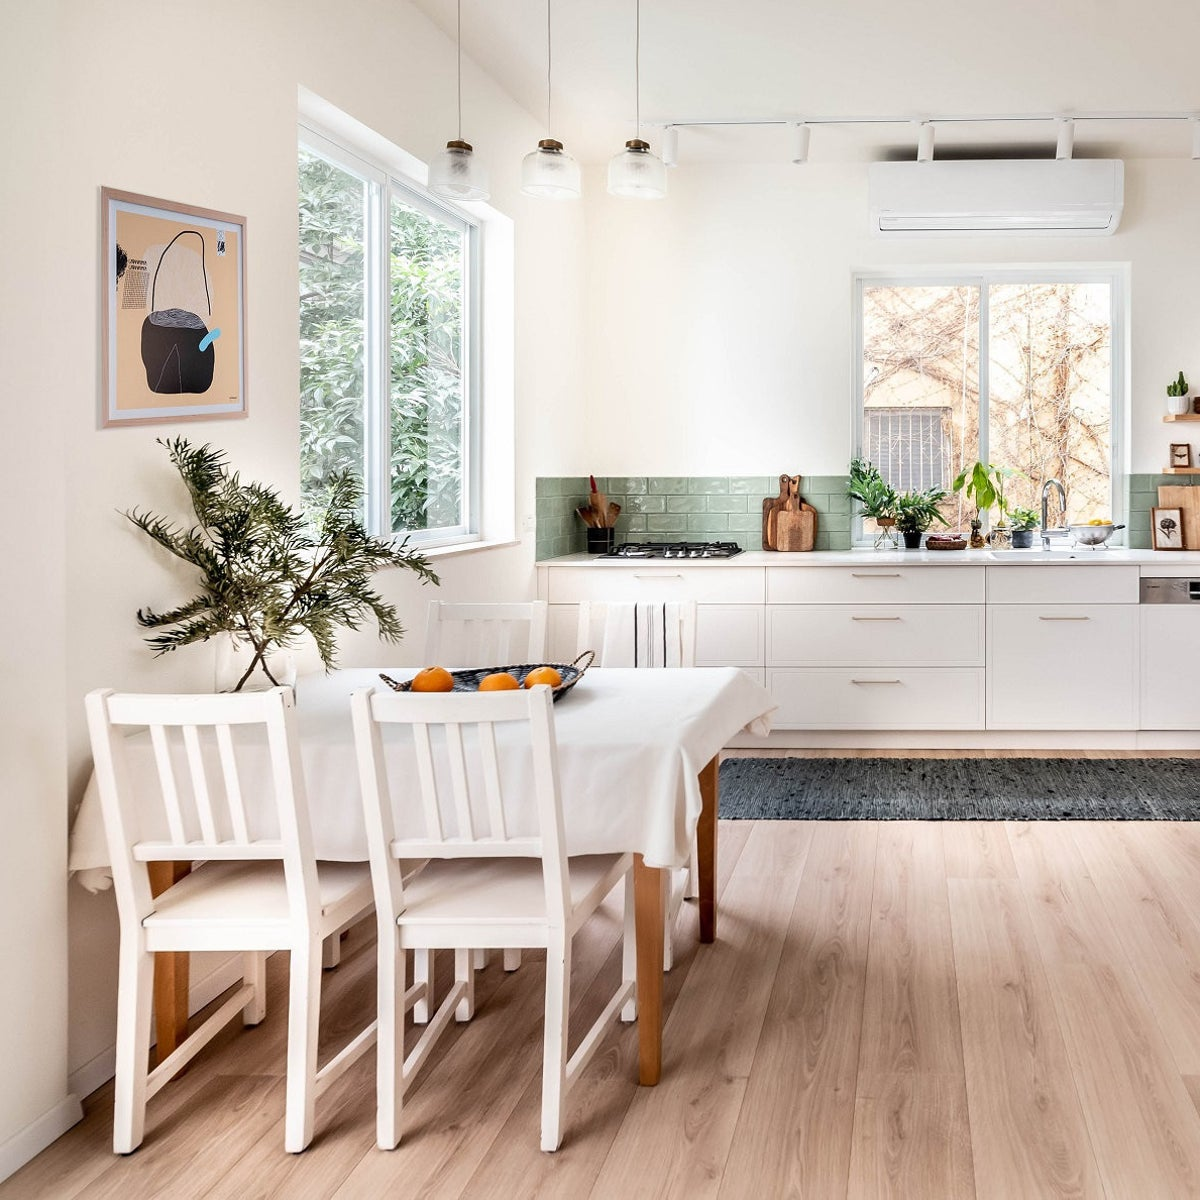 The kitchen, designed by Orit Darom.